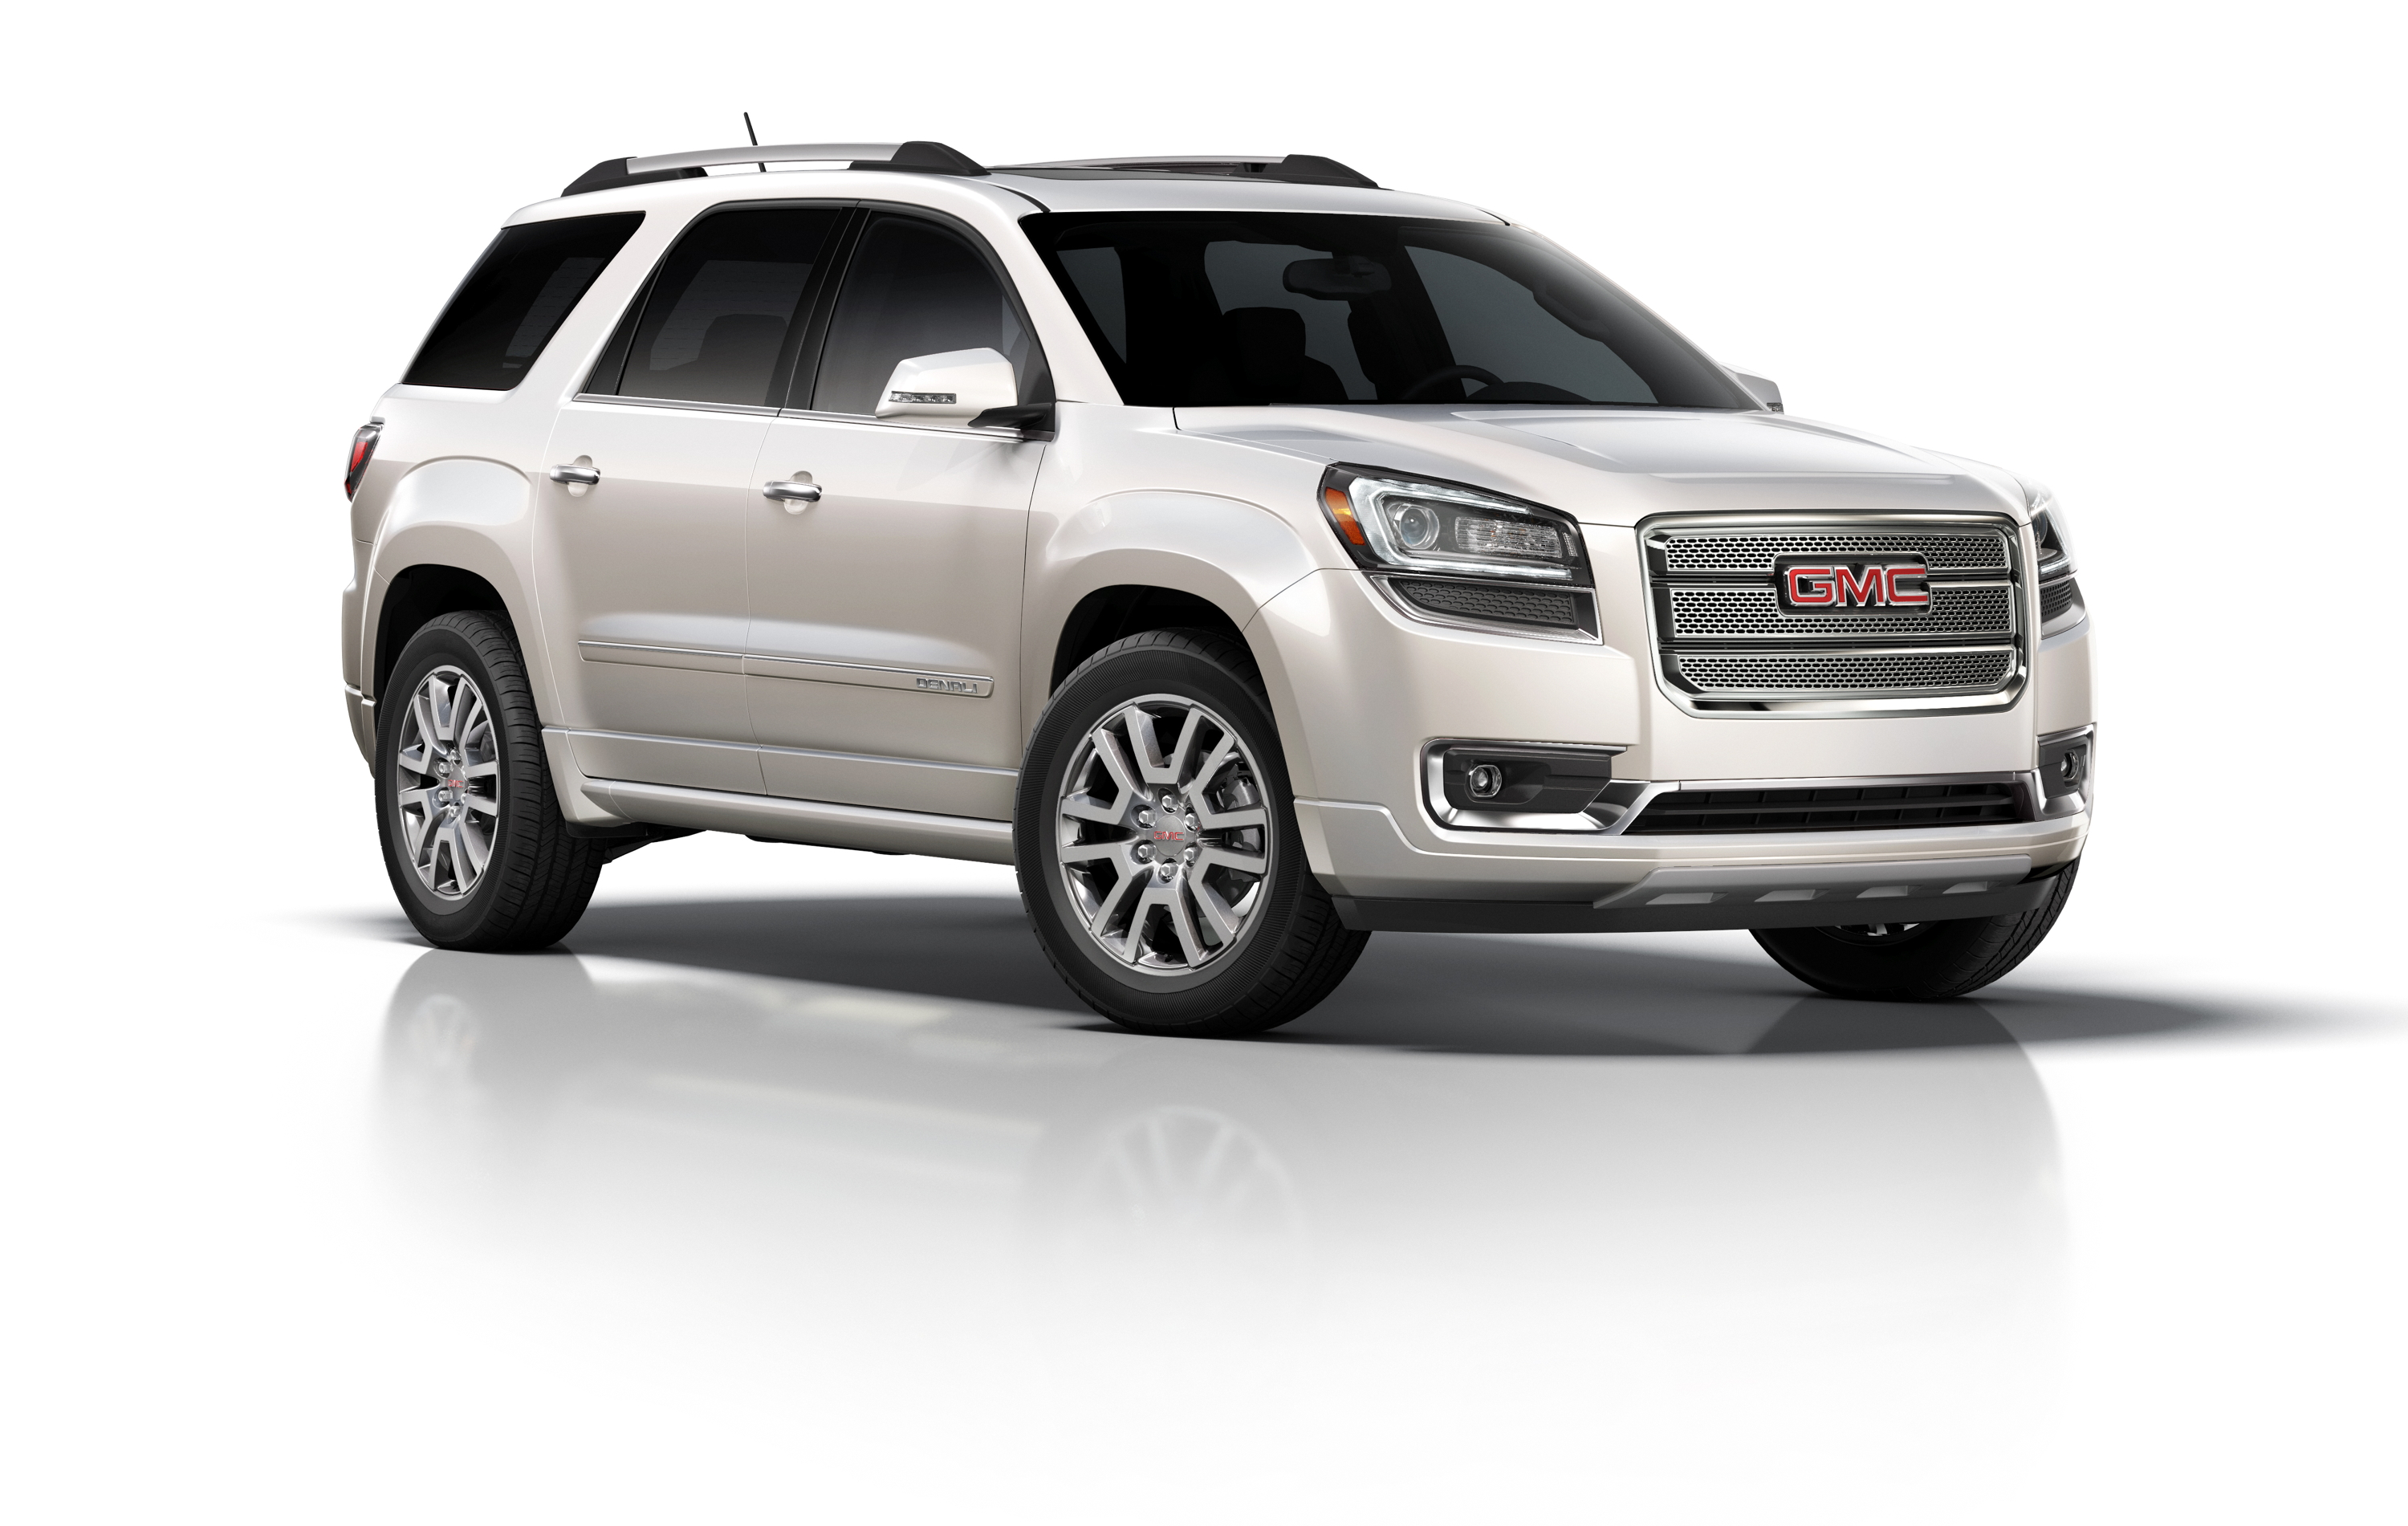 2014 gmc acadia highlights safety convenience features rh media gm com gmc acadia owner's manual 2016 gmc acadia owner's manual 2016